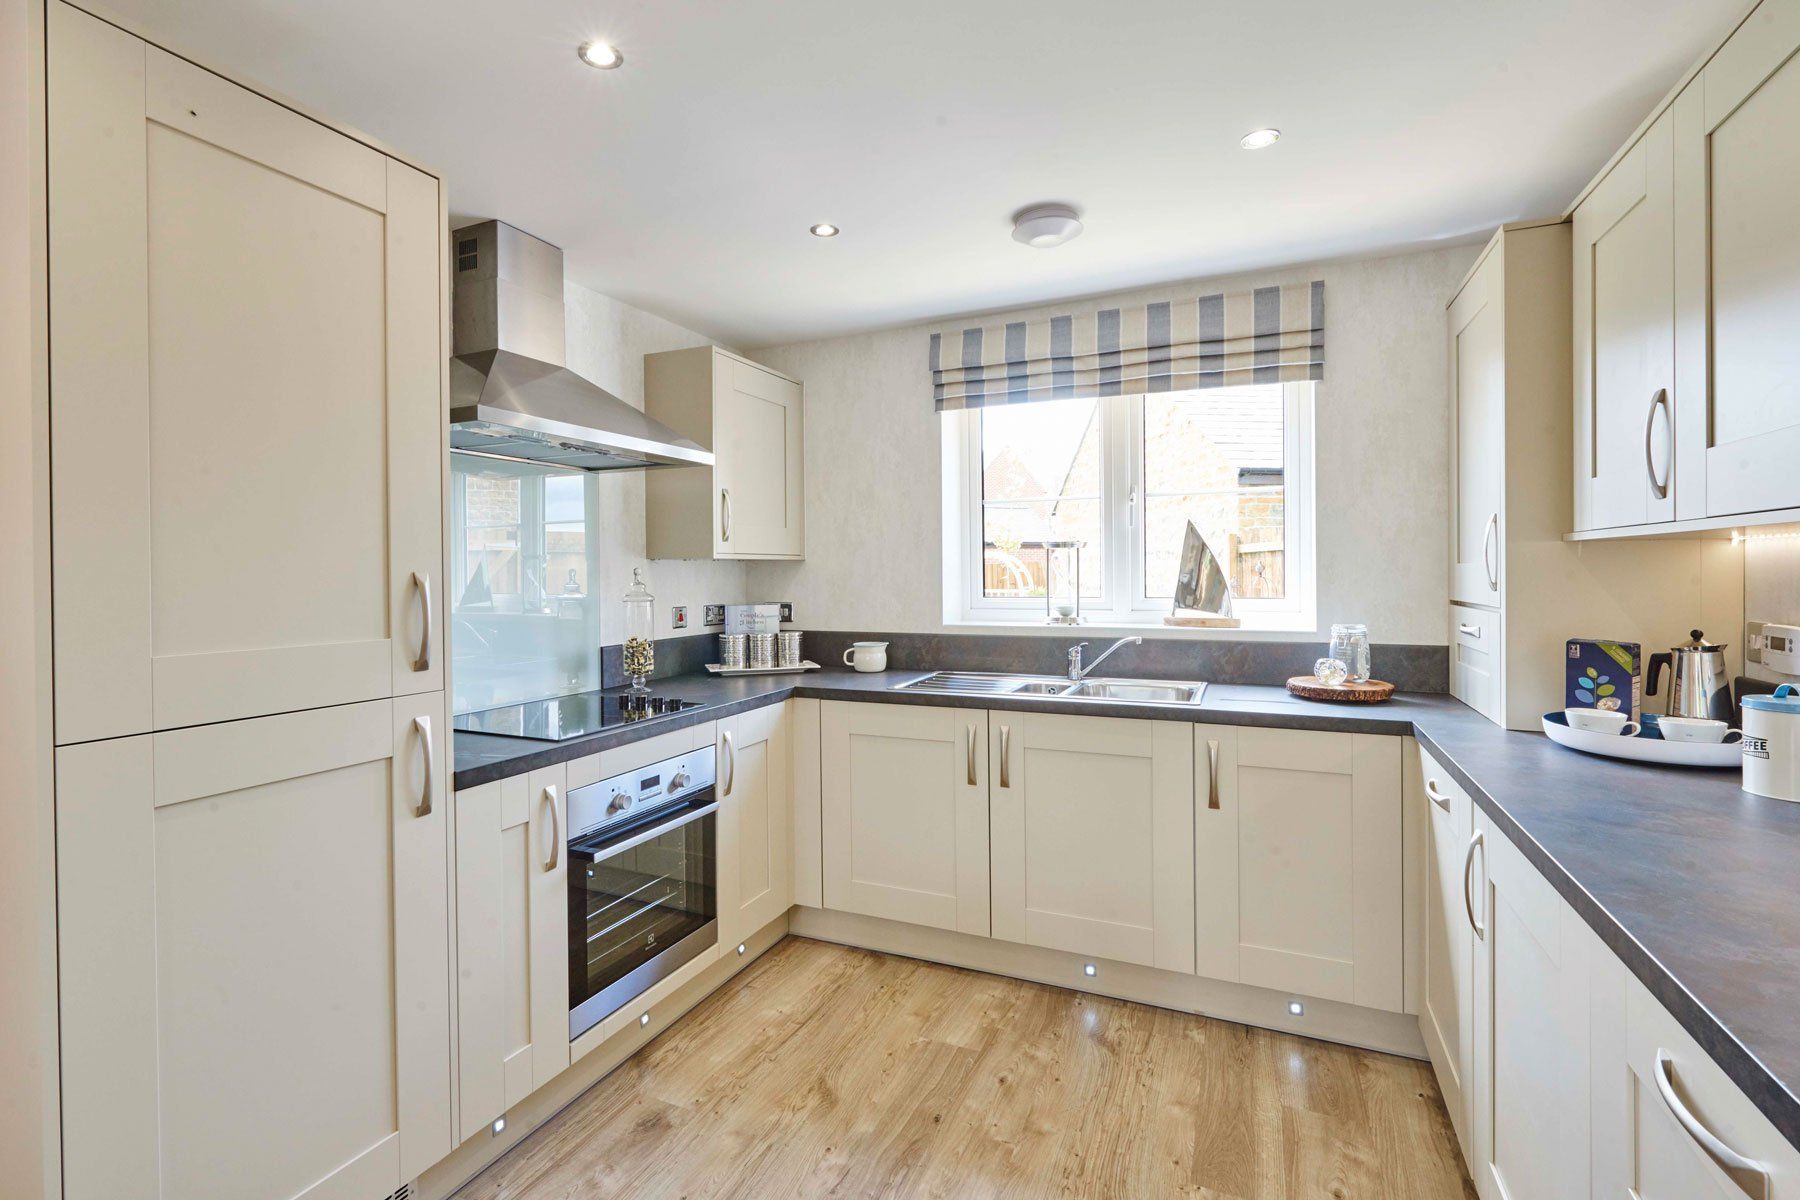 Taylor Wimpey Exeter - Cranbrook - Yewdale example kitchen